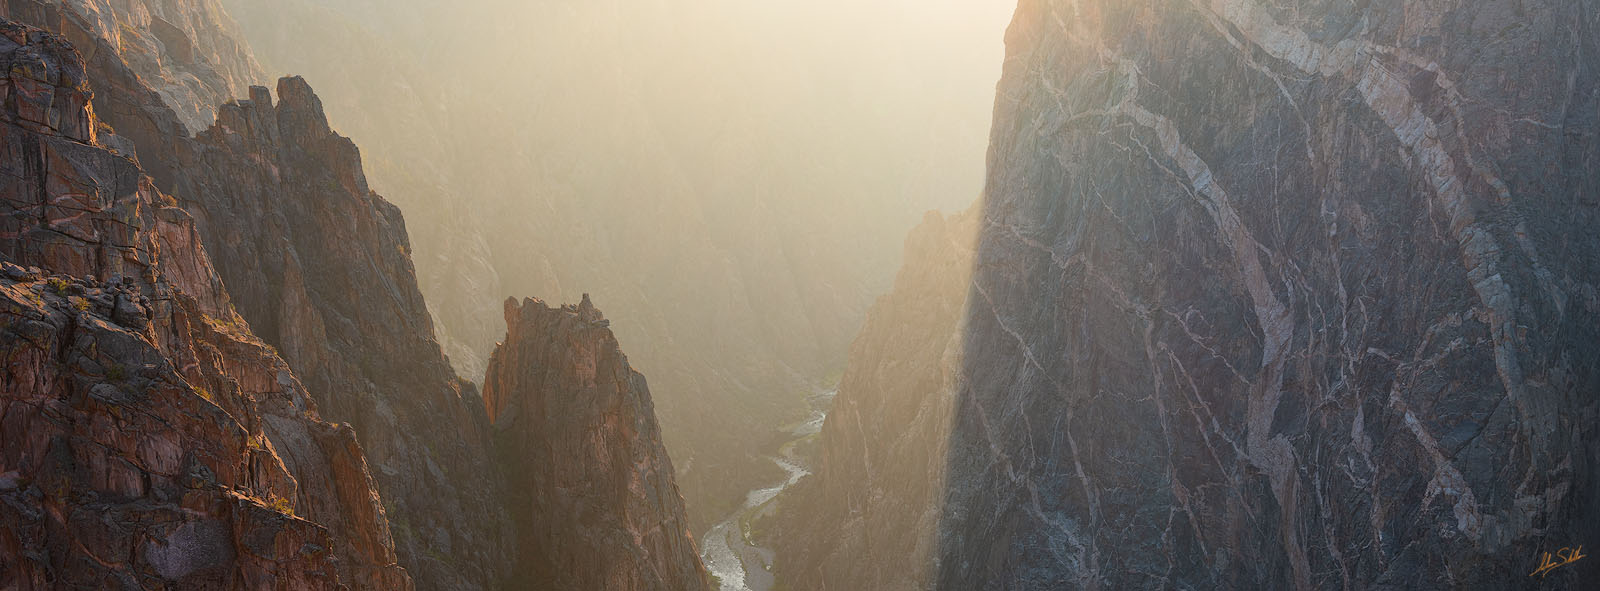 Black Canyon, Black Canyon of the Gunnison, CO, Colorado, Gunnison, Gunnison River, National Park, Painted Wall, Pano, Panorama, Panoramic, photo